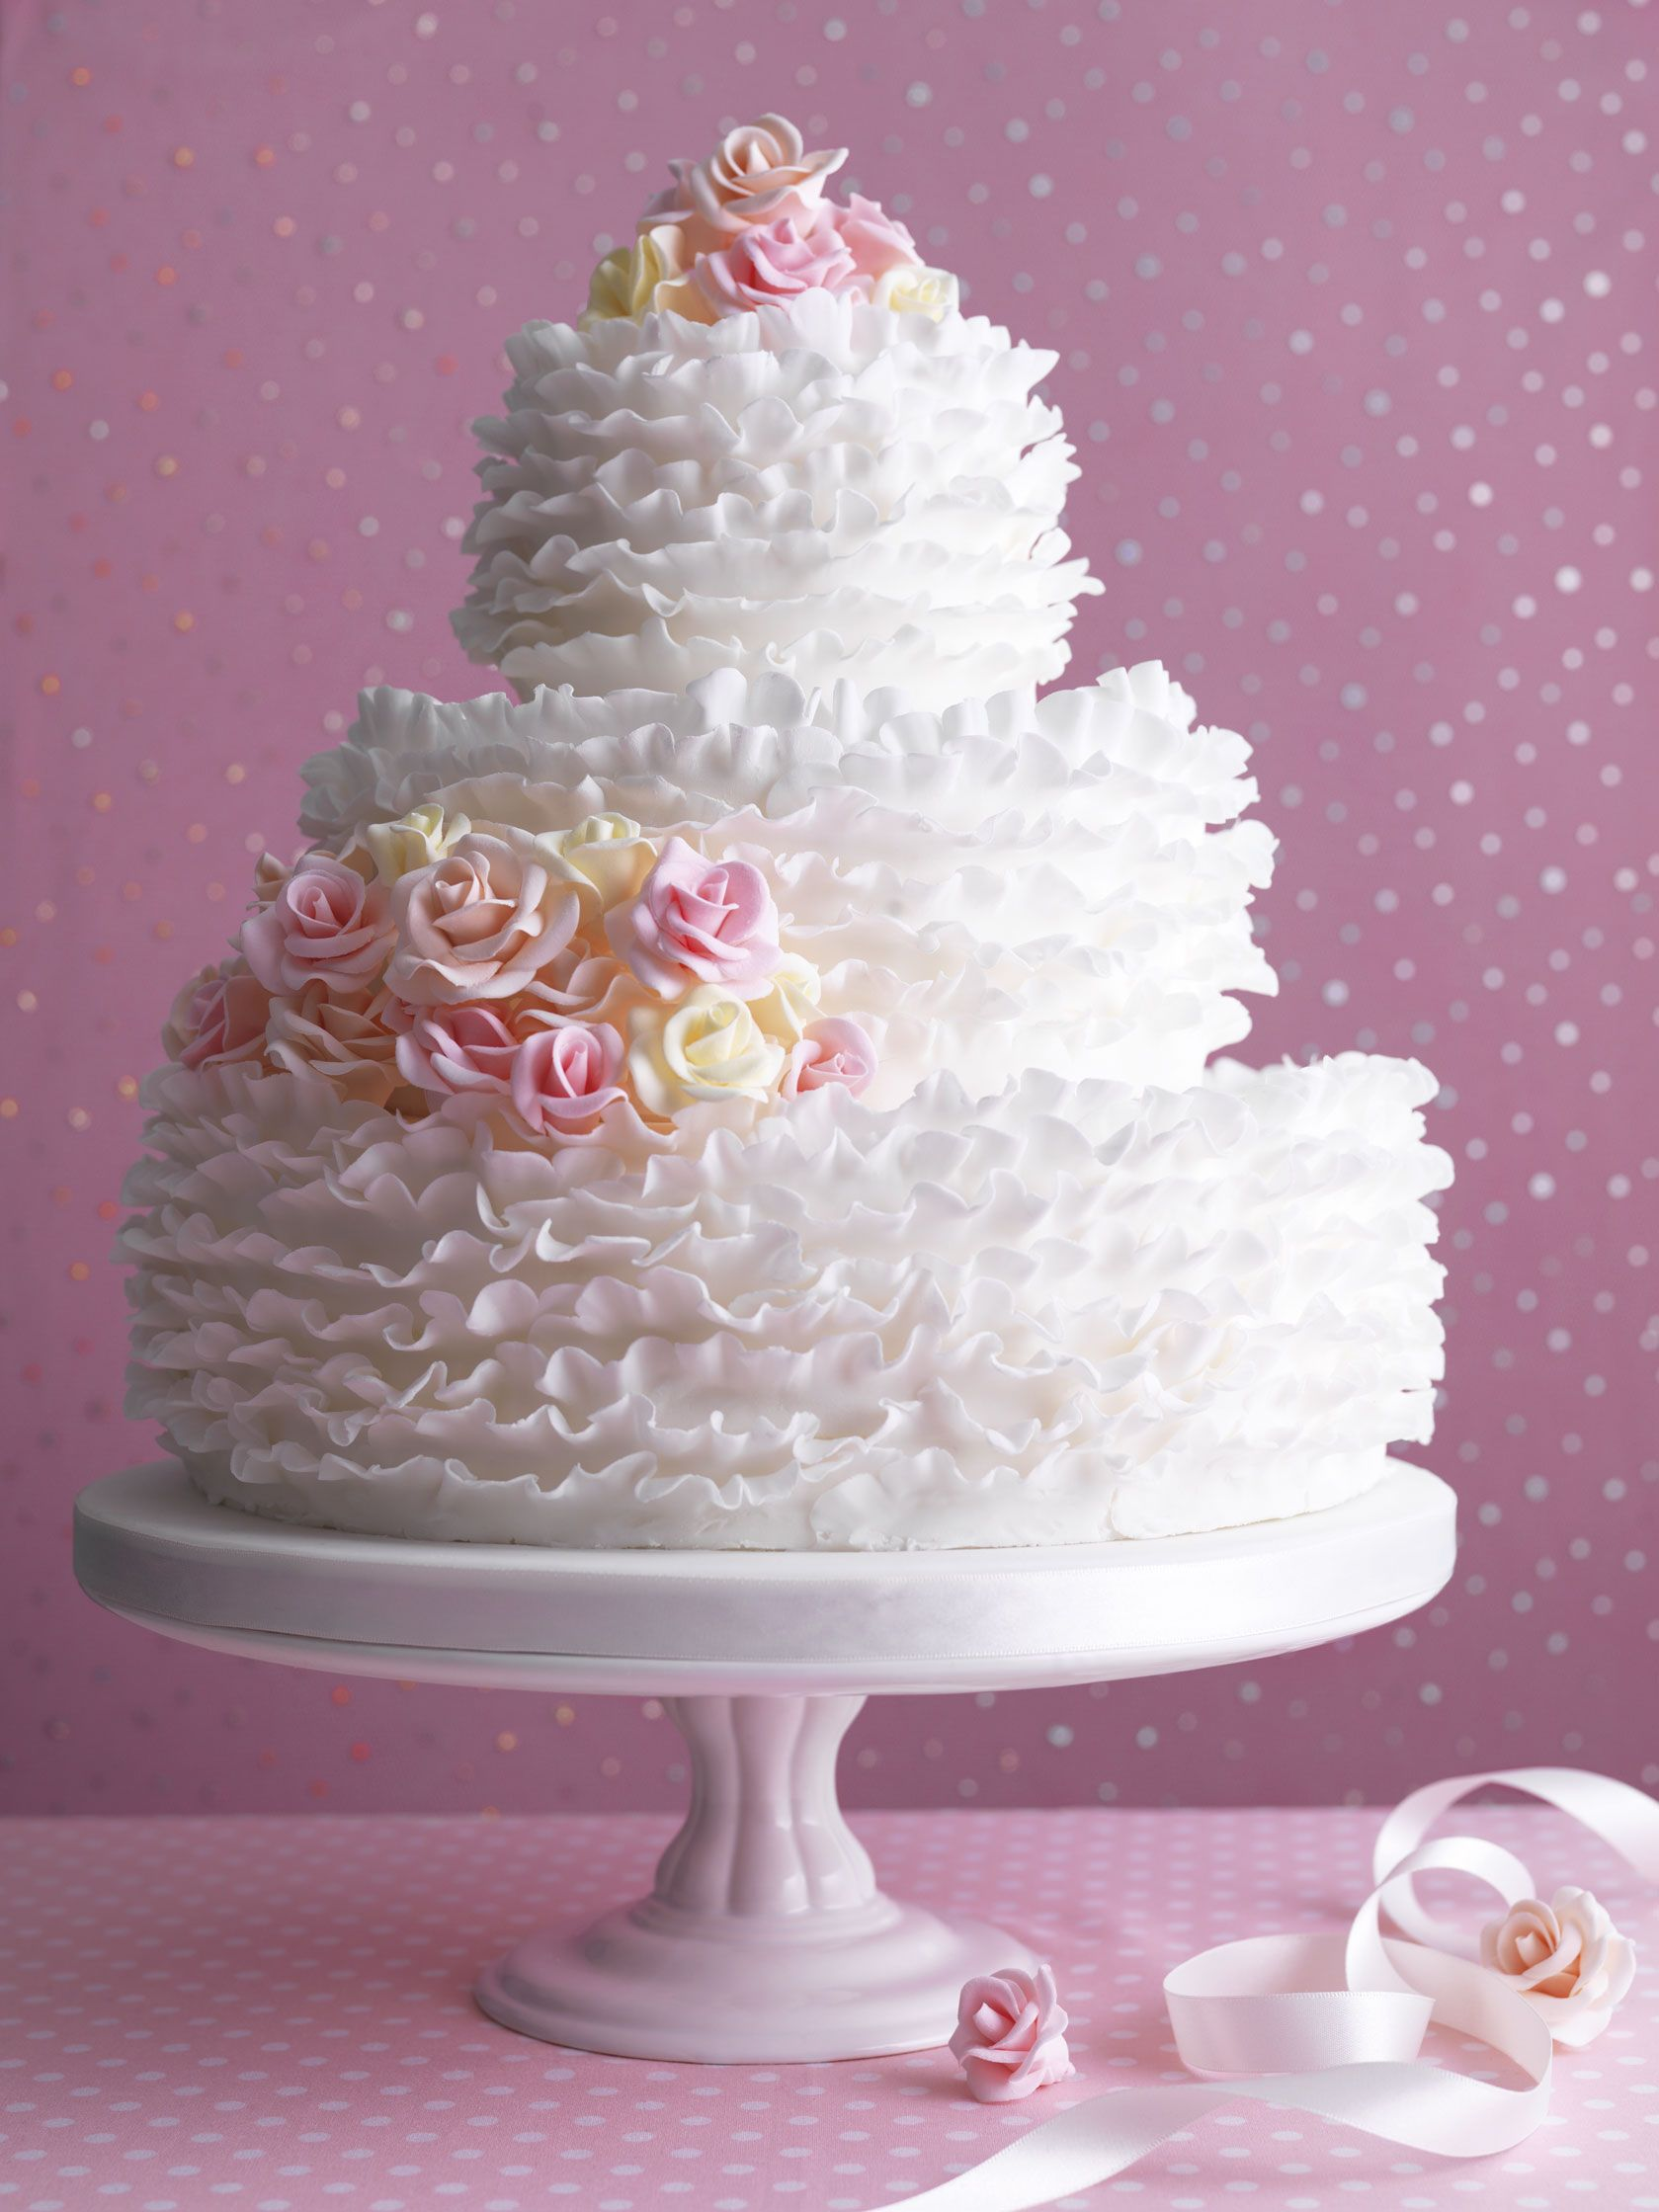 How To Make A Wedding Cake With Recipes For Different Tin Sizes